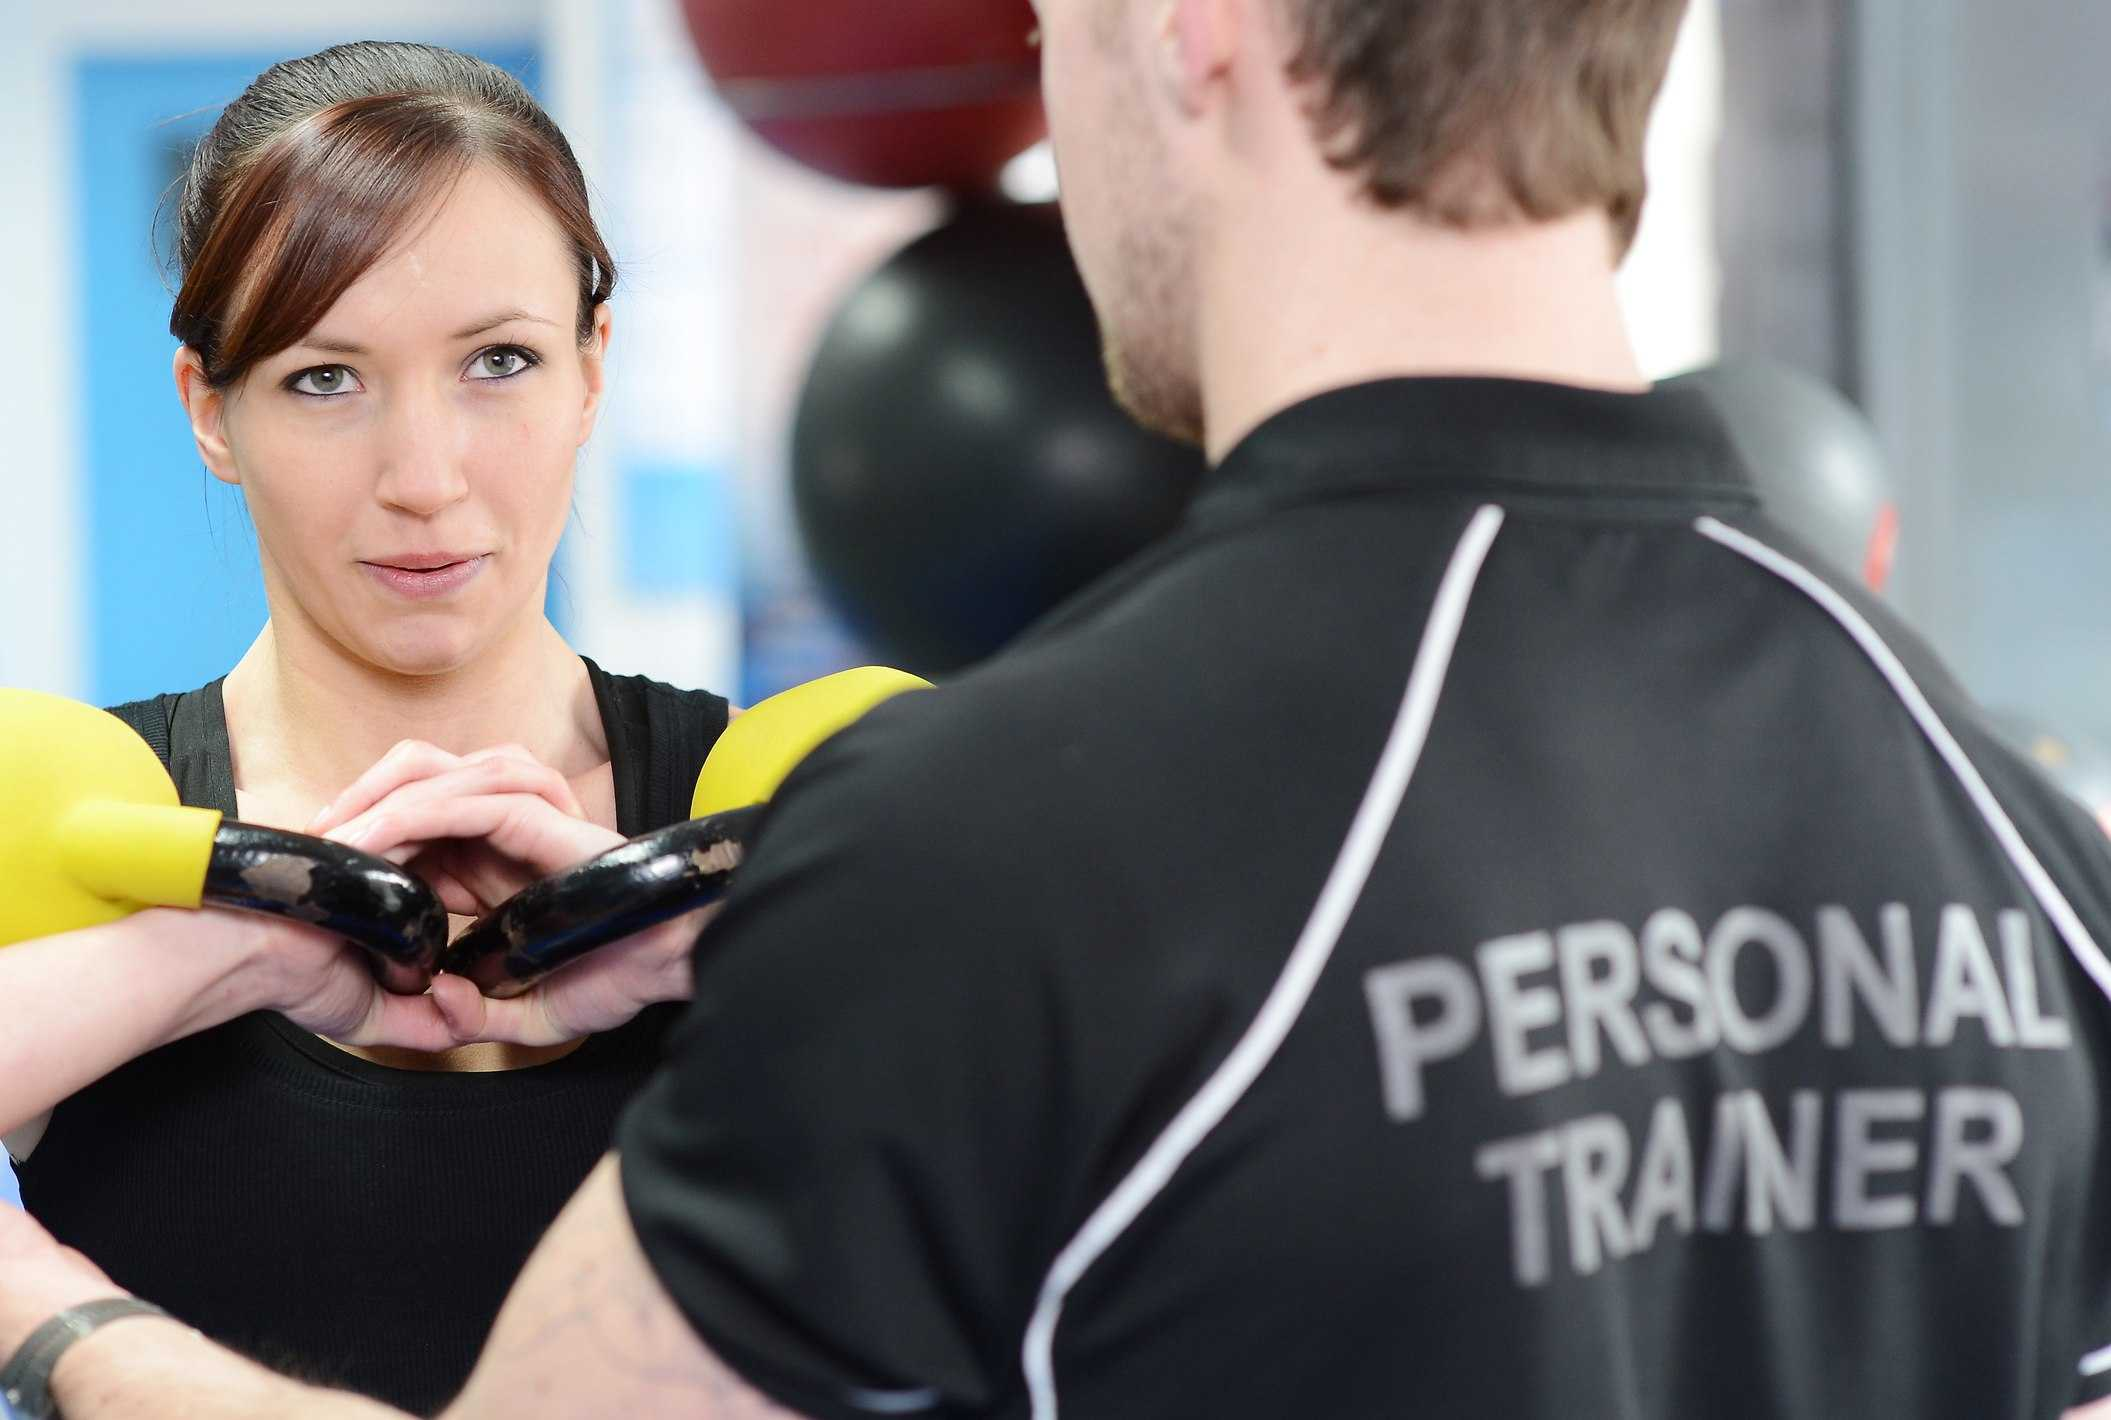 personal training career